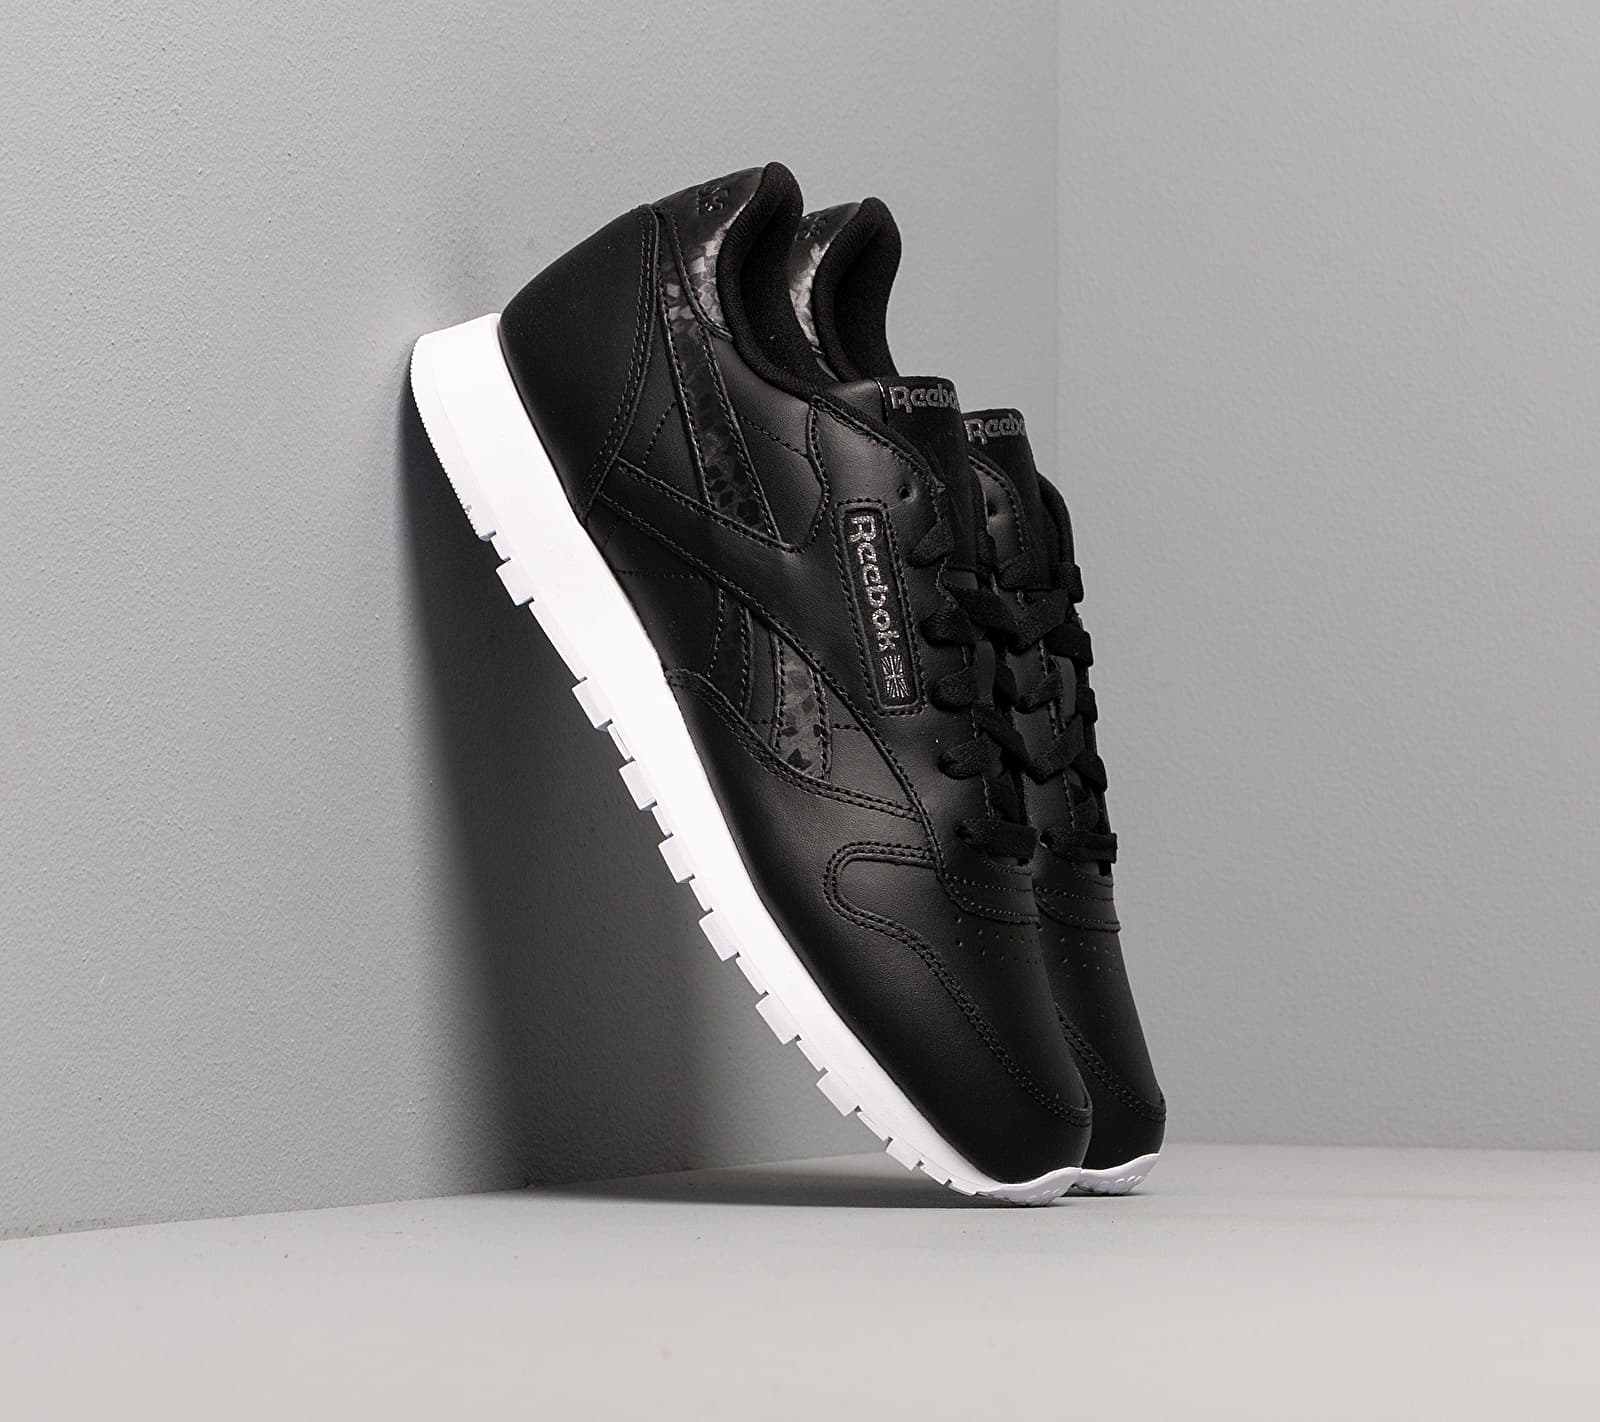 Reebok Classic Leather Black/ Black/ White EUR 37.5